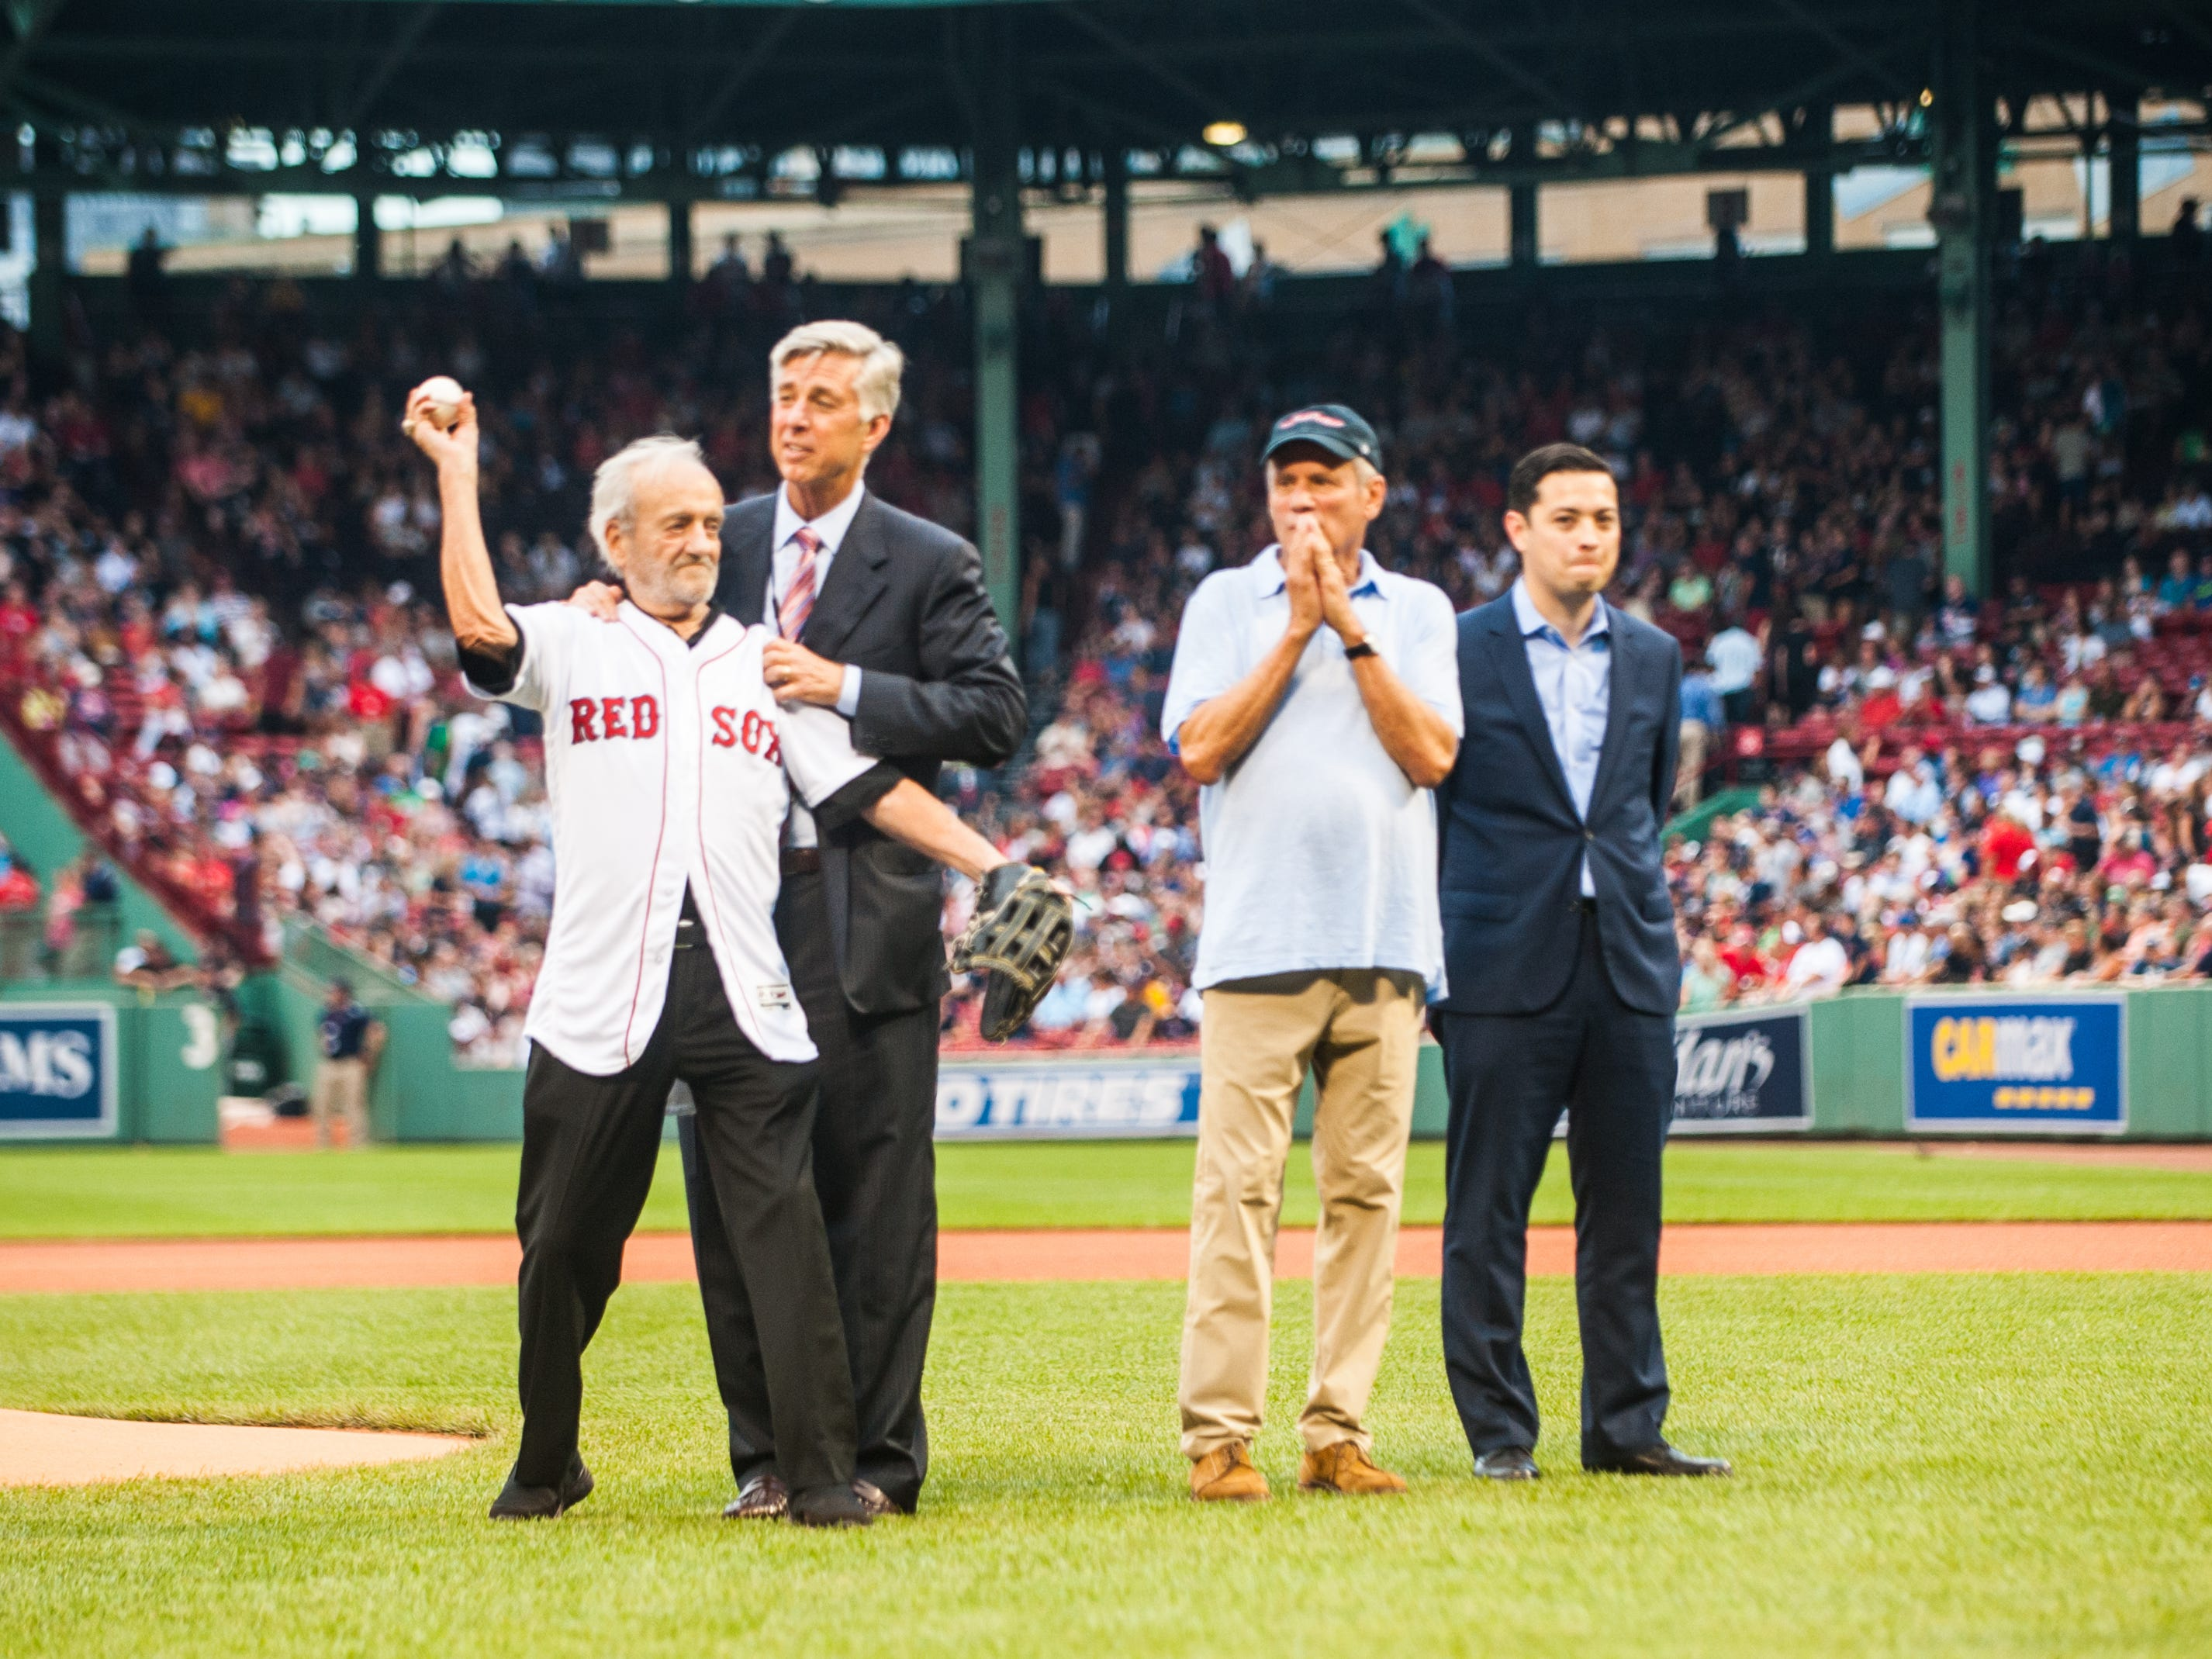 August 2, 2018, Boston, MA: Major League Baseball executive Roland Hemond throws the Ceremonial First Pitch at Fenway Park in Boston, Massachusetts Thursday, August 2, 2018.  (Photo by Reginald Thomas II/Boston Red Sox)